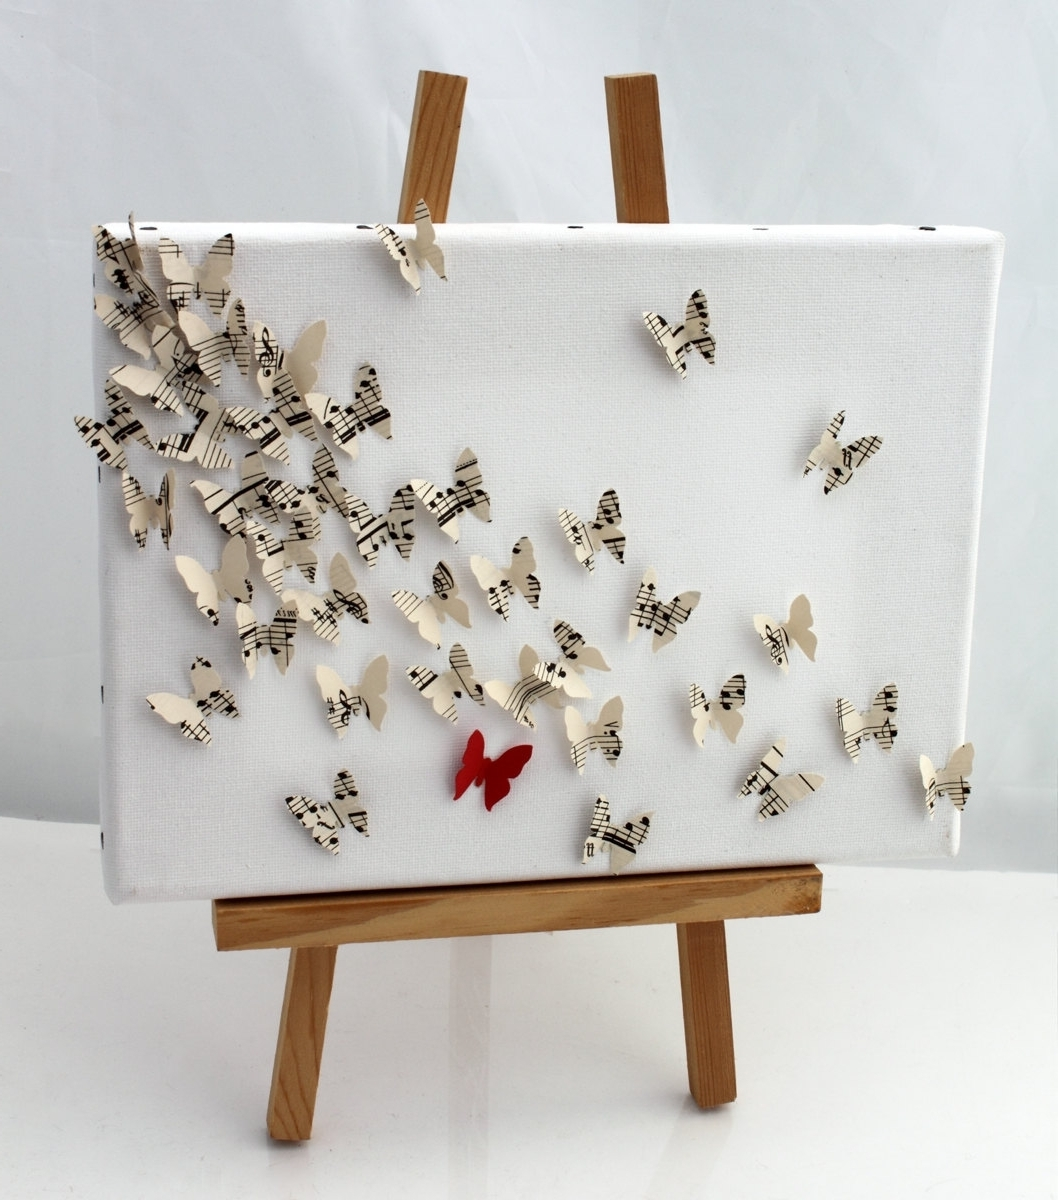 3D Butterfly Wall Art Collage On Canvas  Upcycled Vintage Sheet Regarding Popular Gold Coast 3D Wall Art (View 1 of 15)